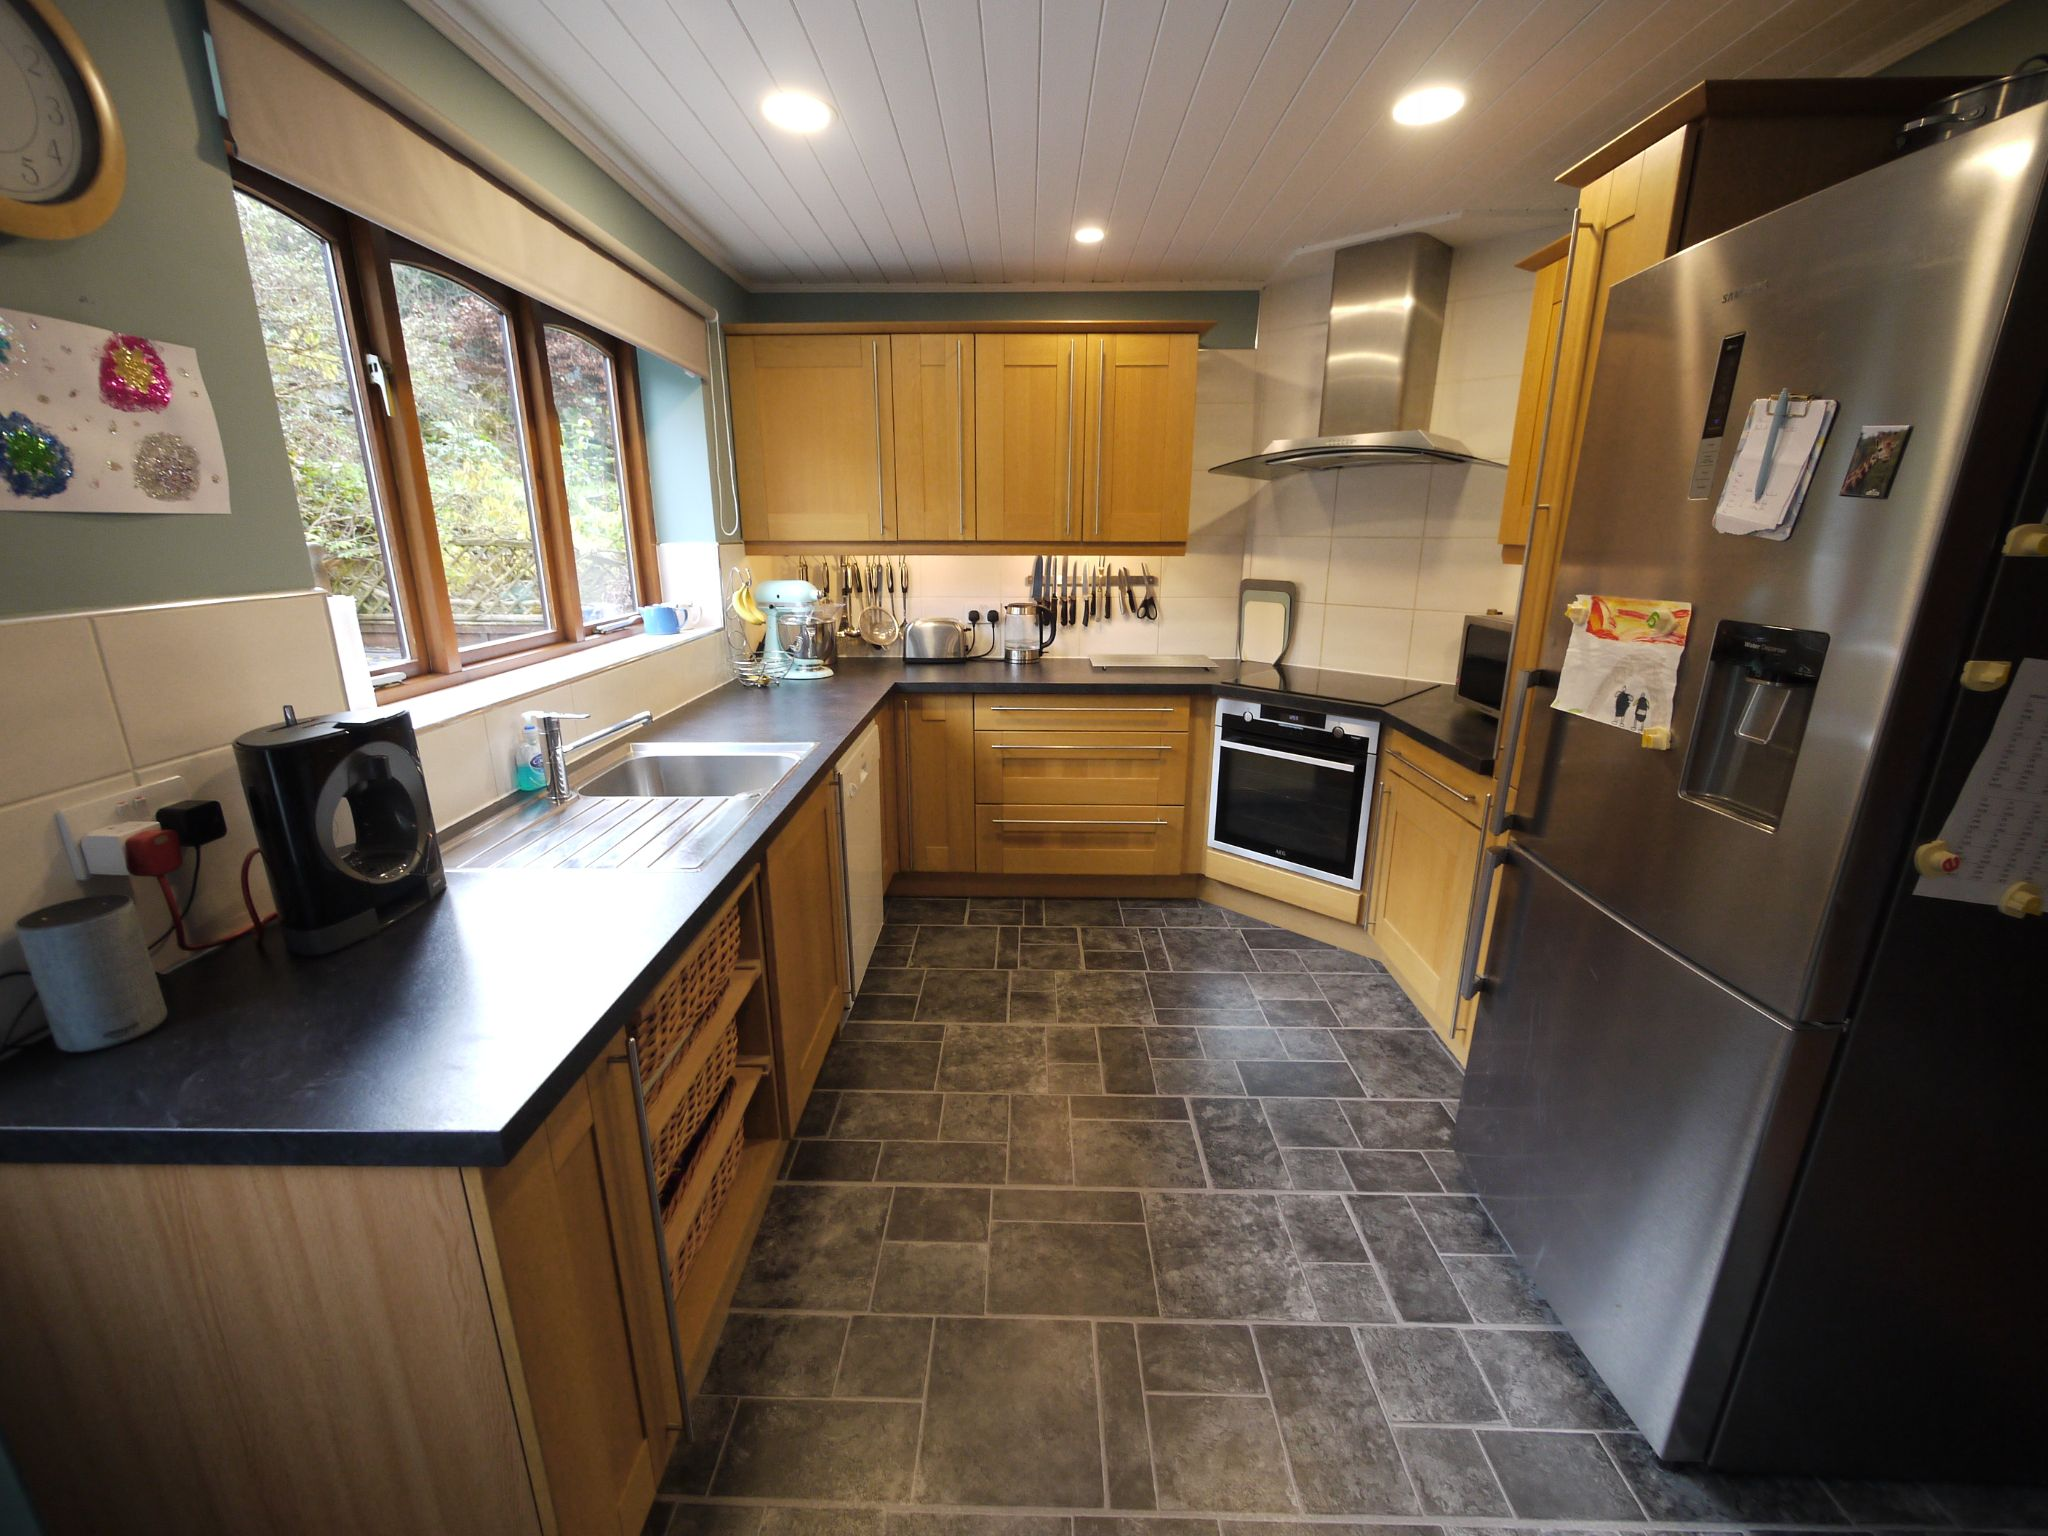 4 bedroom detached house SSTC in Brighouse - Kitchen.